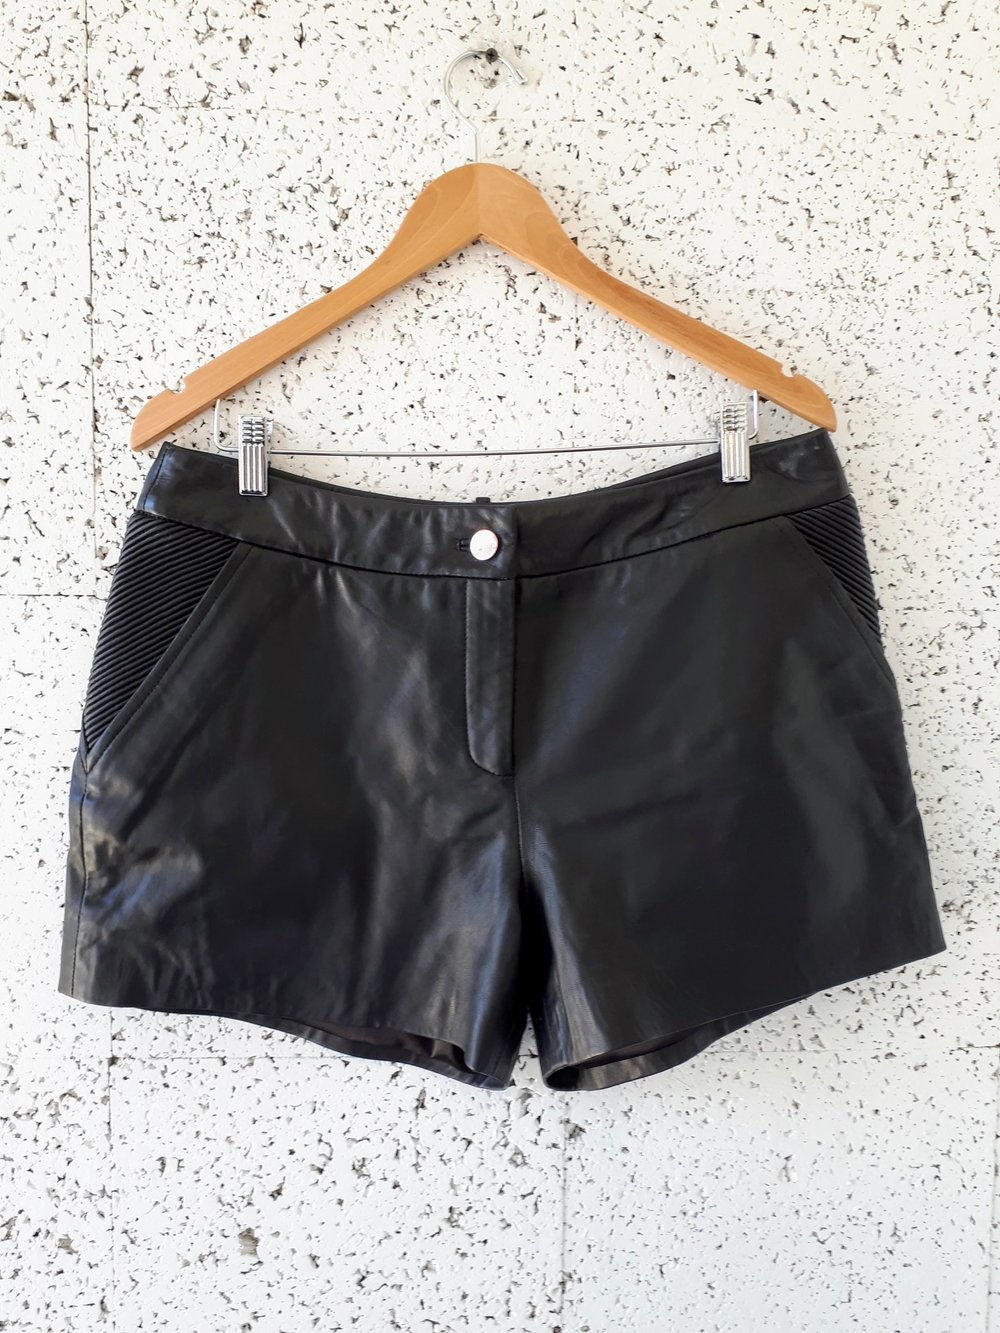 Ted Baker shorts; Size 32, $75